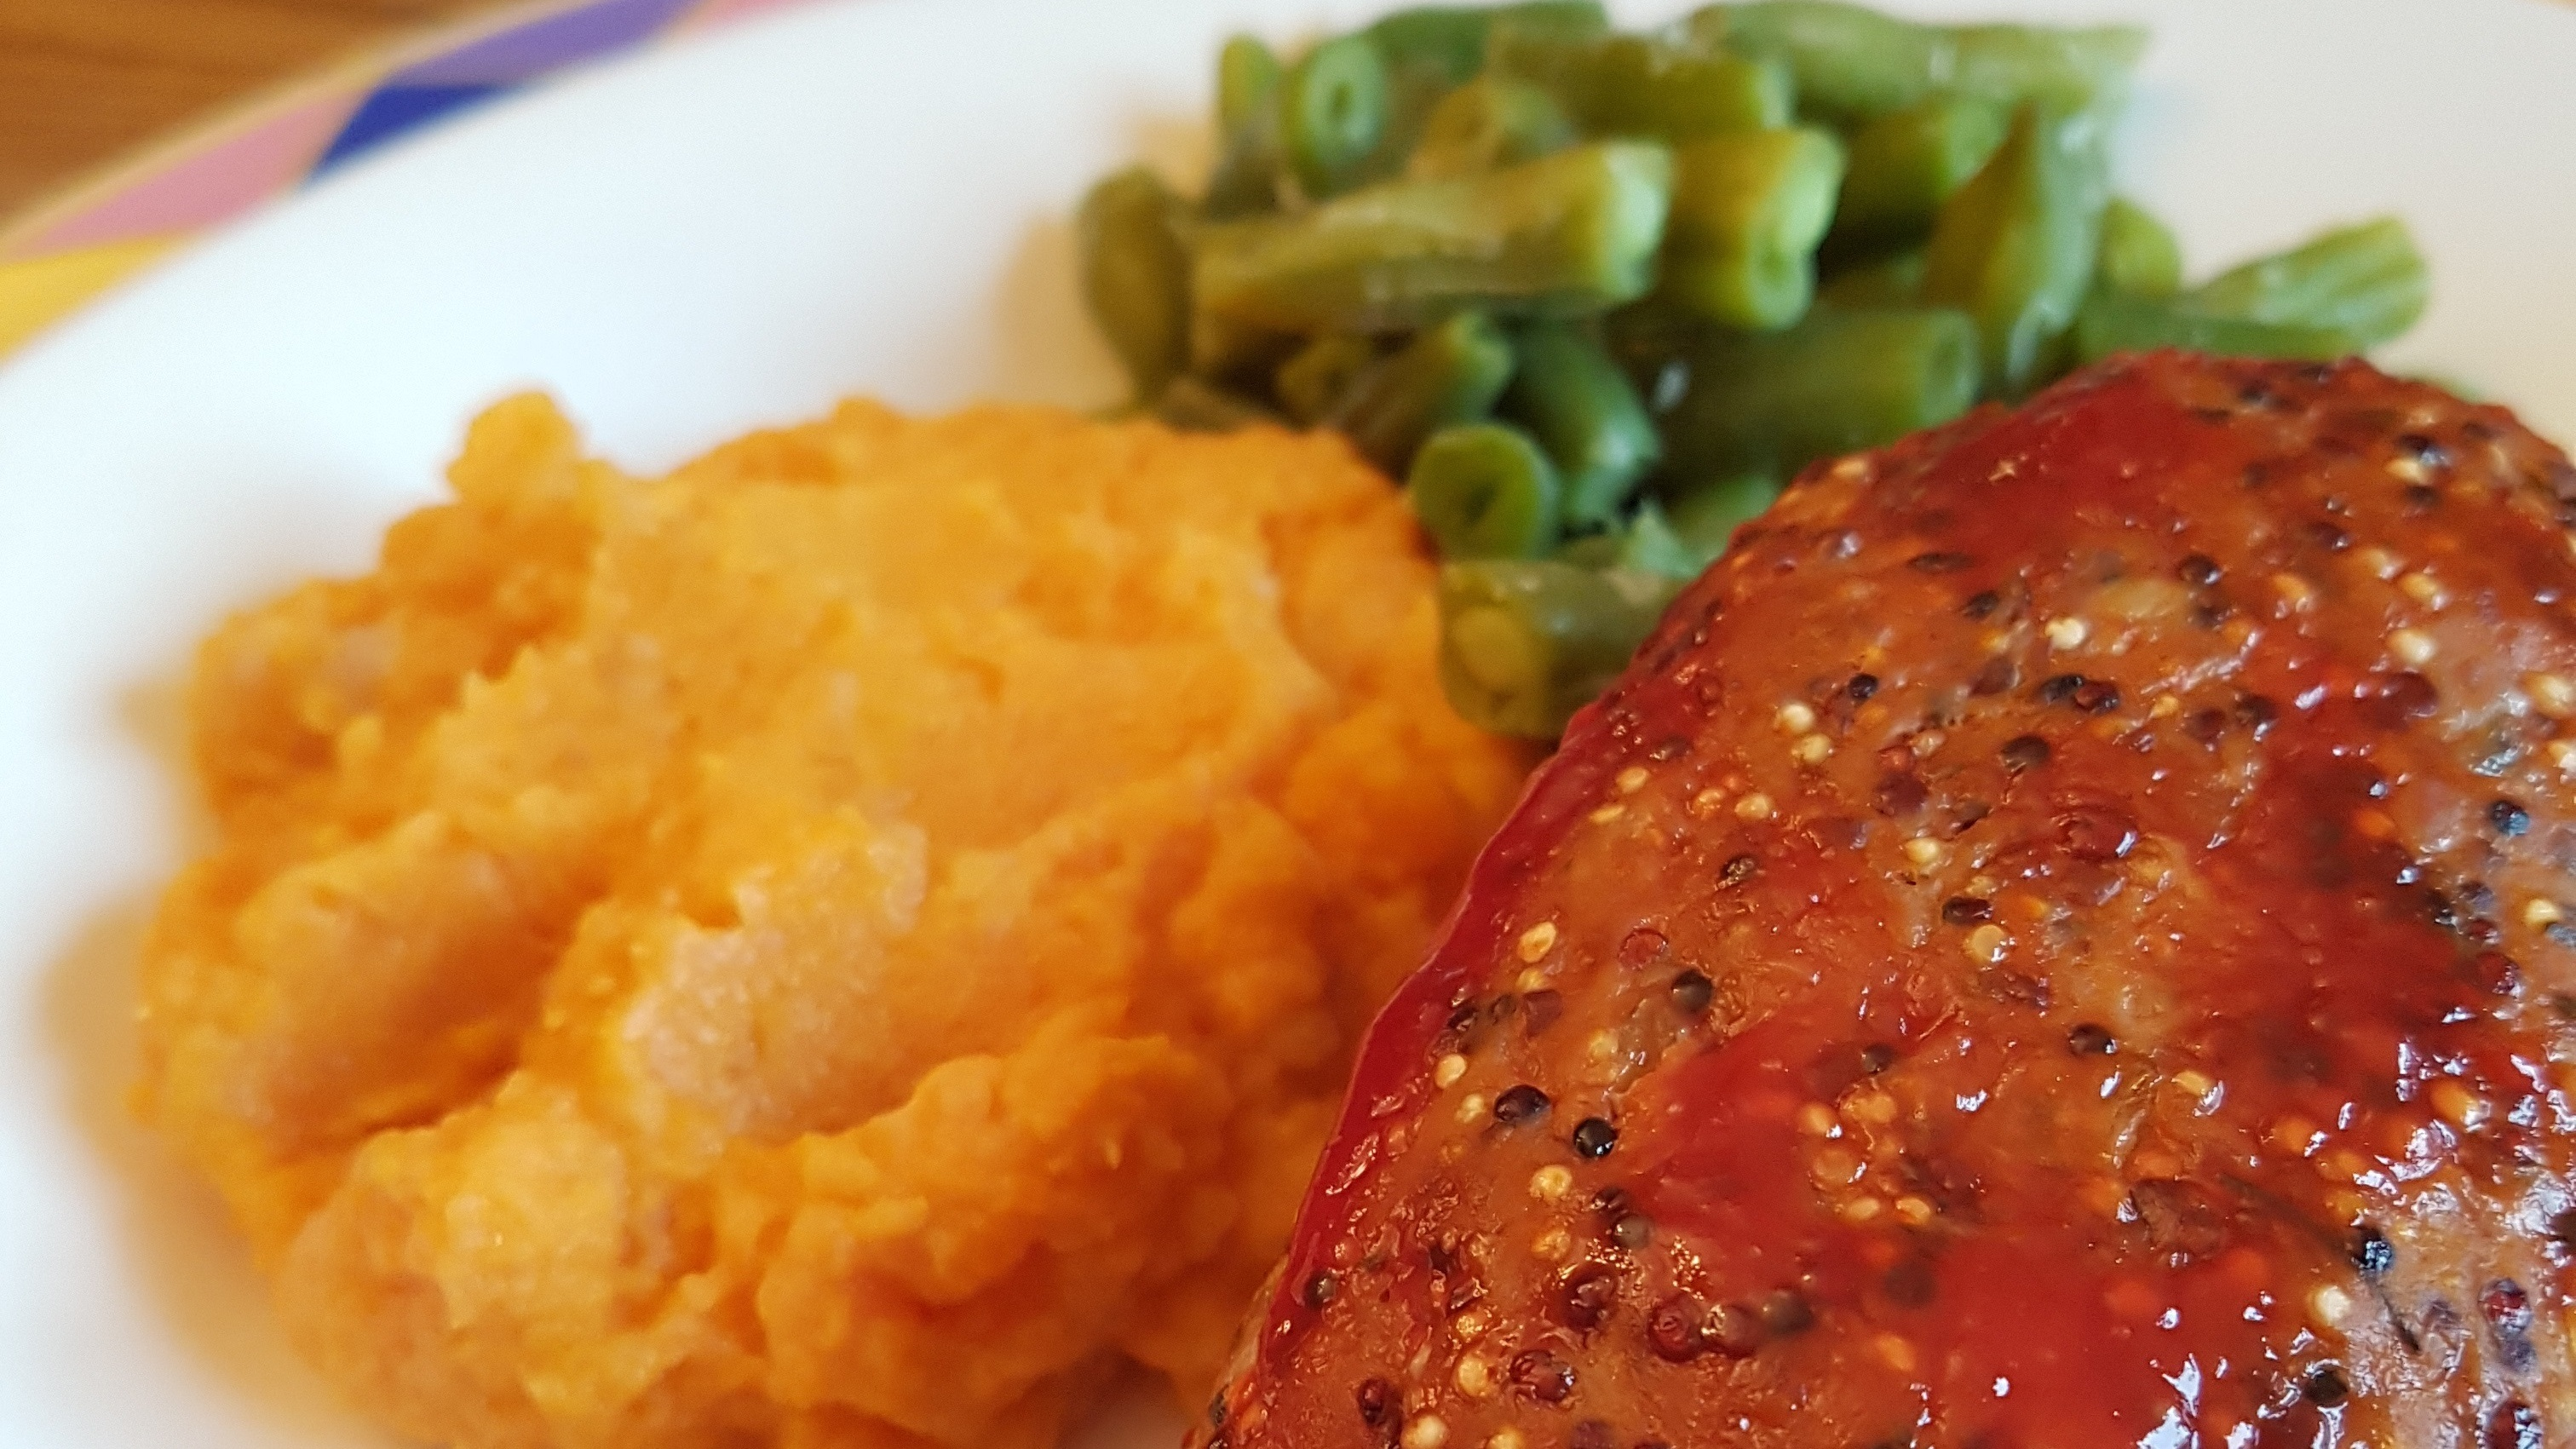 Turkey meatloaf with green beans and sweet potato mash on plate